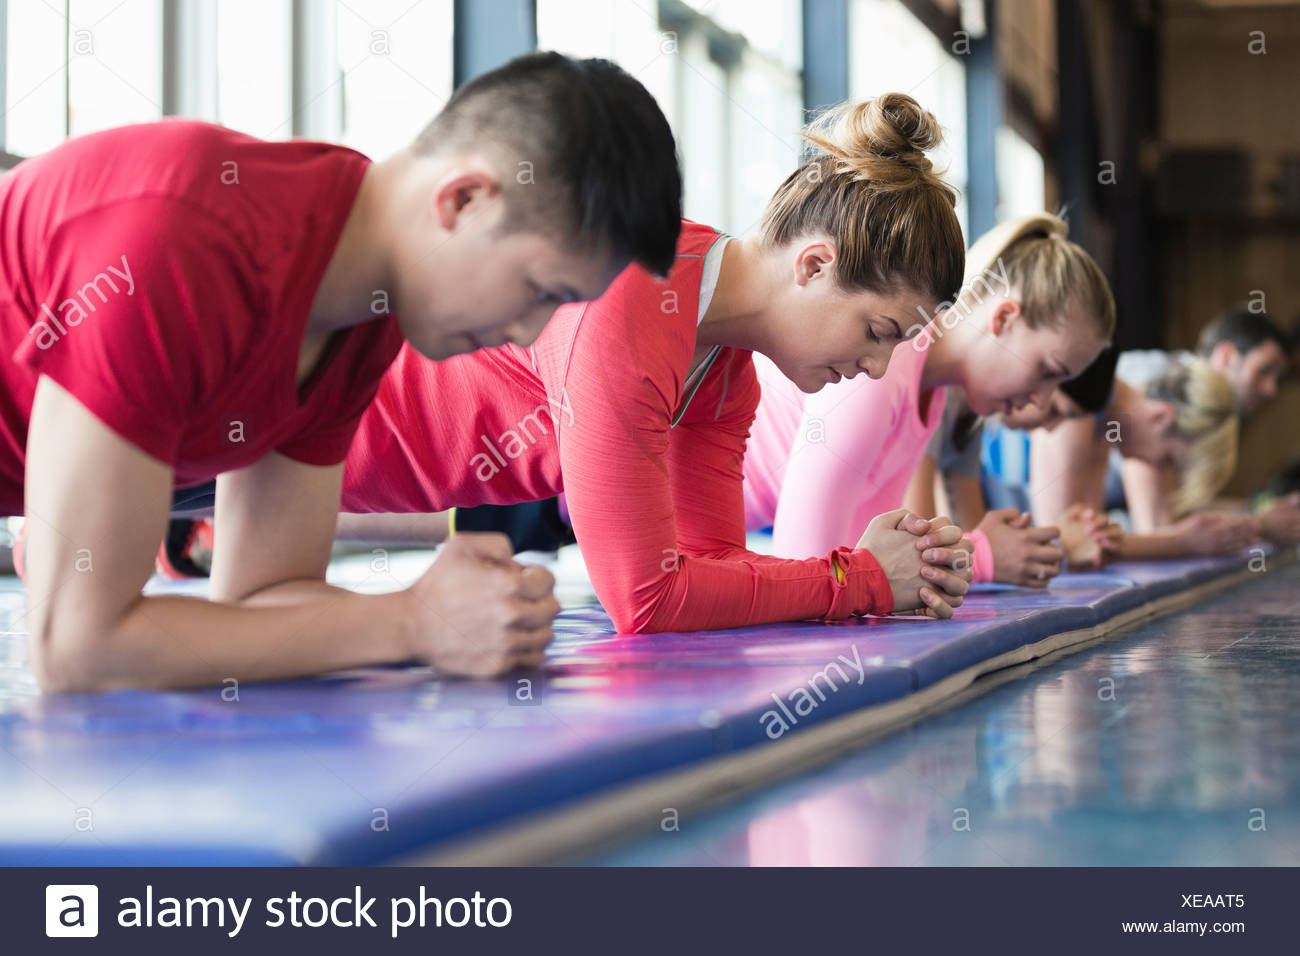 Groupe de personnes exerçant dans la classe de conditionnement physique Photo Stock